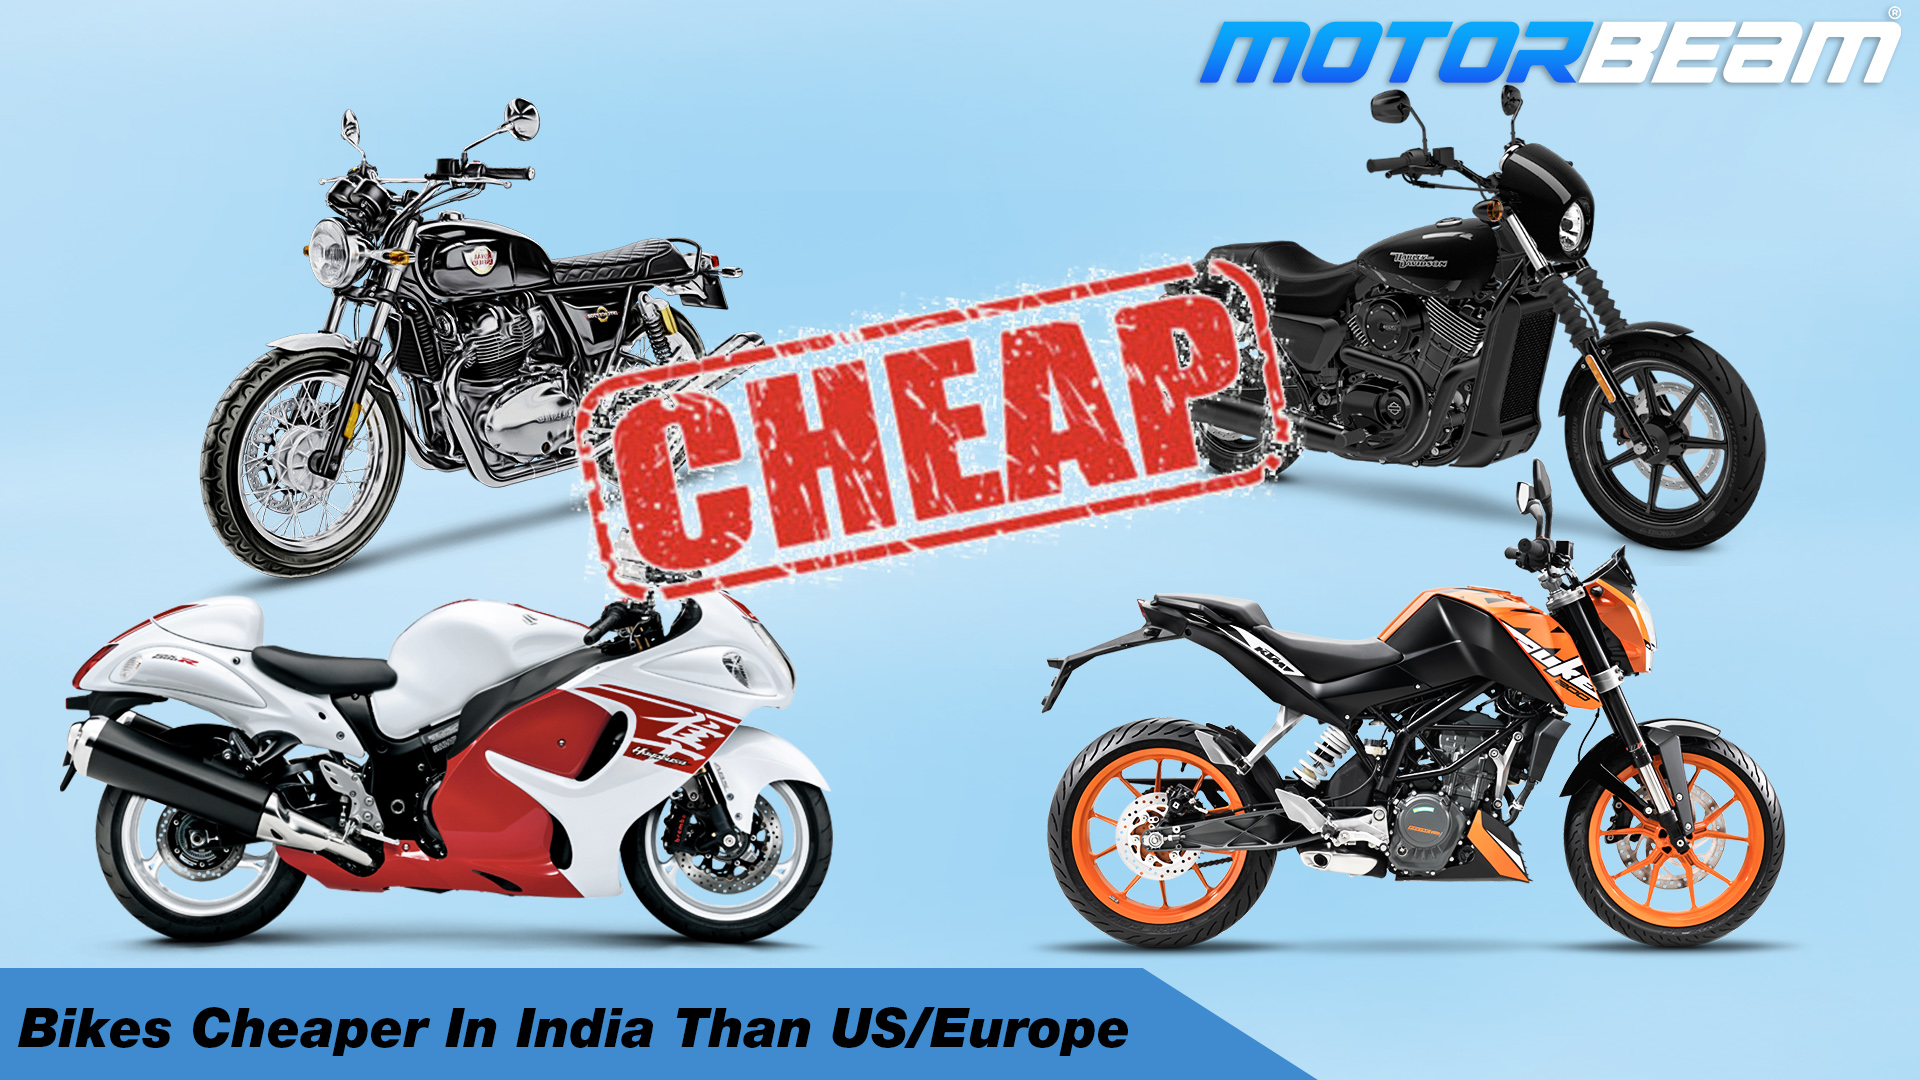 Bikes Cheaper In India Than US Europe